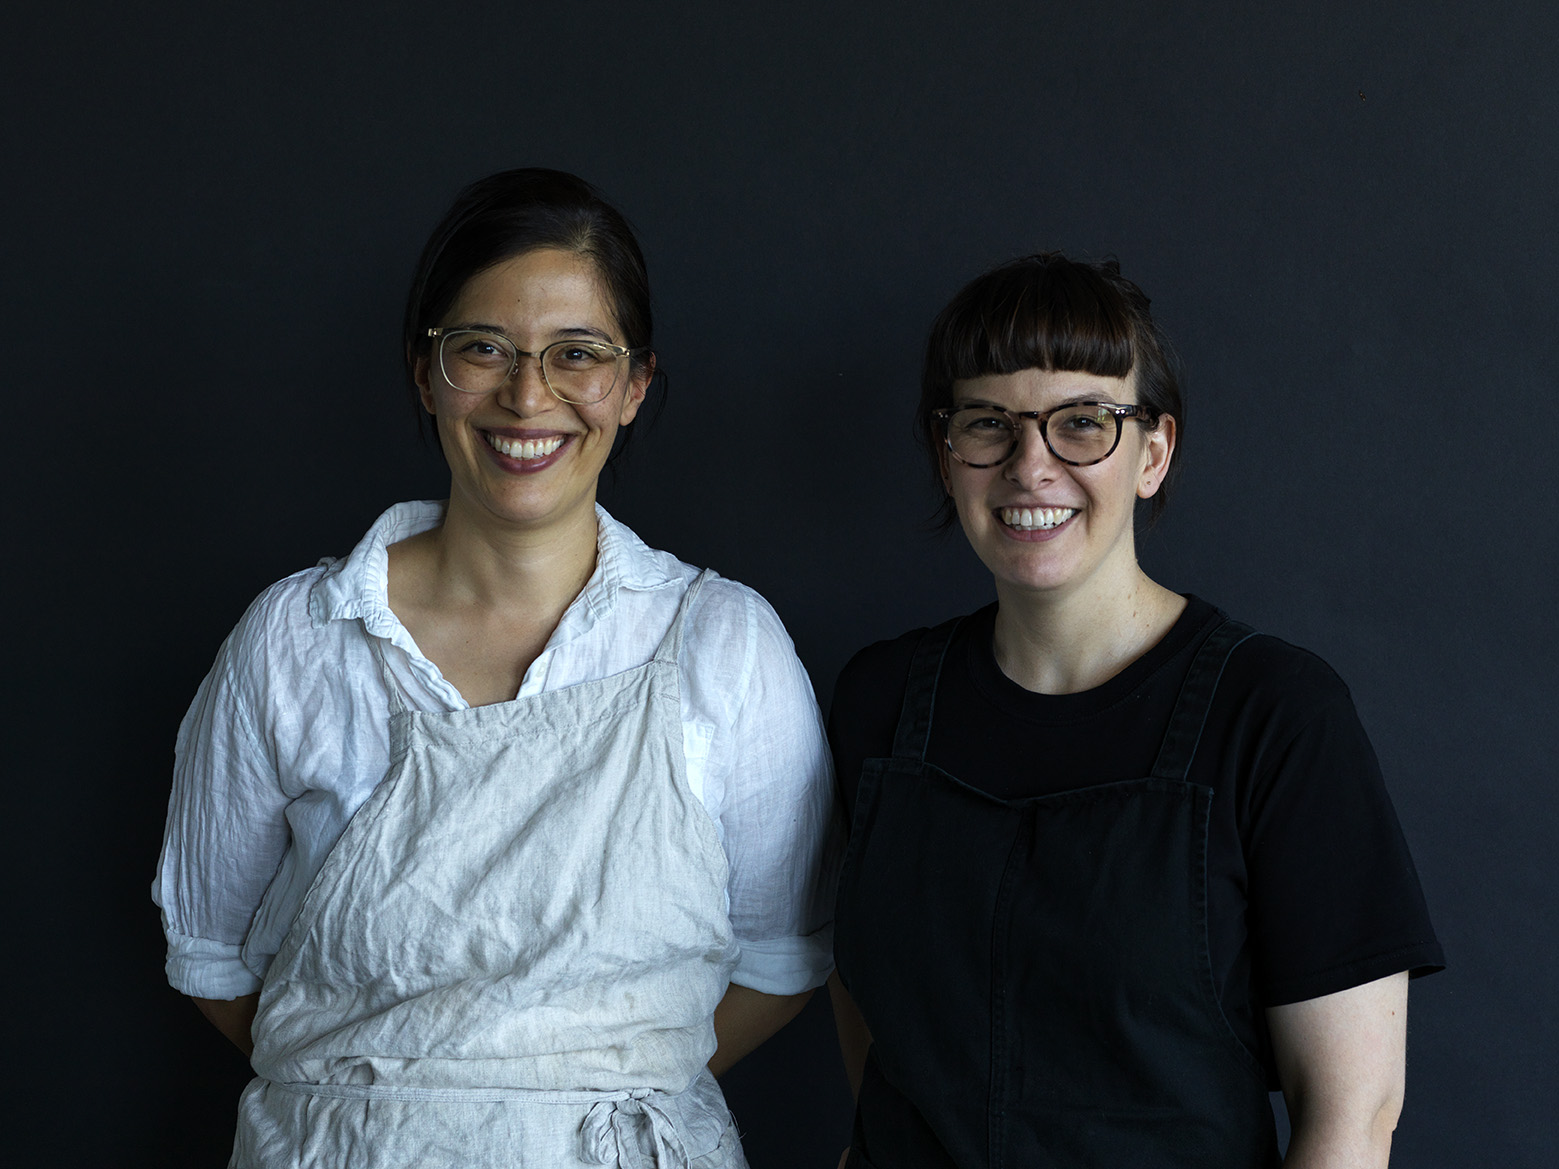 We invited two of Sydney's top chef talents - Trisha Greentree and Jemma Whiteman - to try their hand at the tri tip.